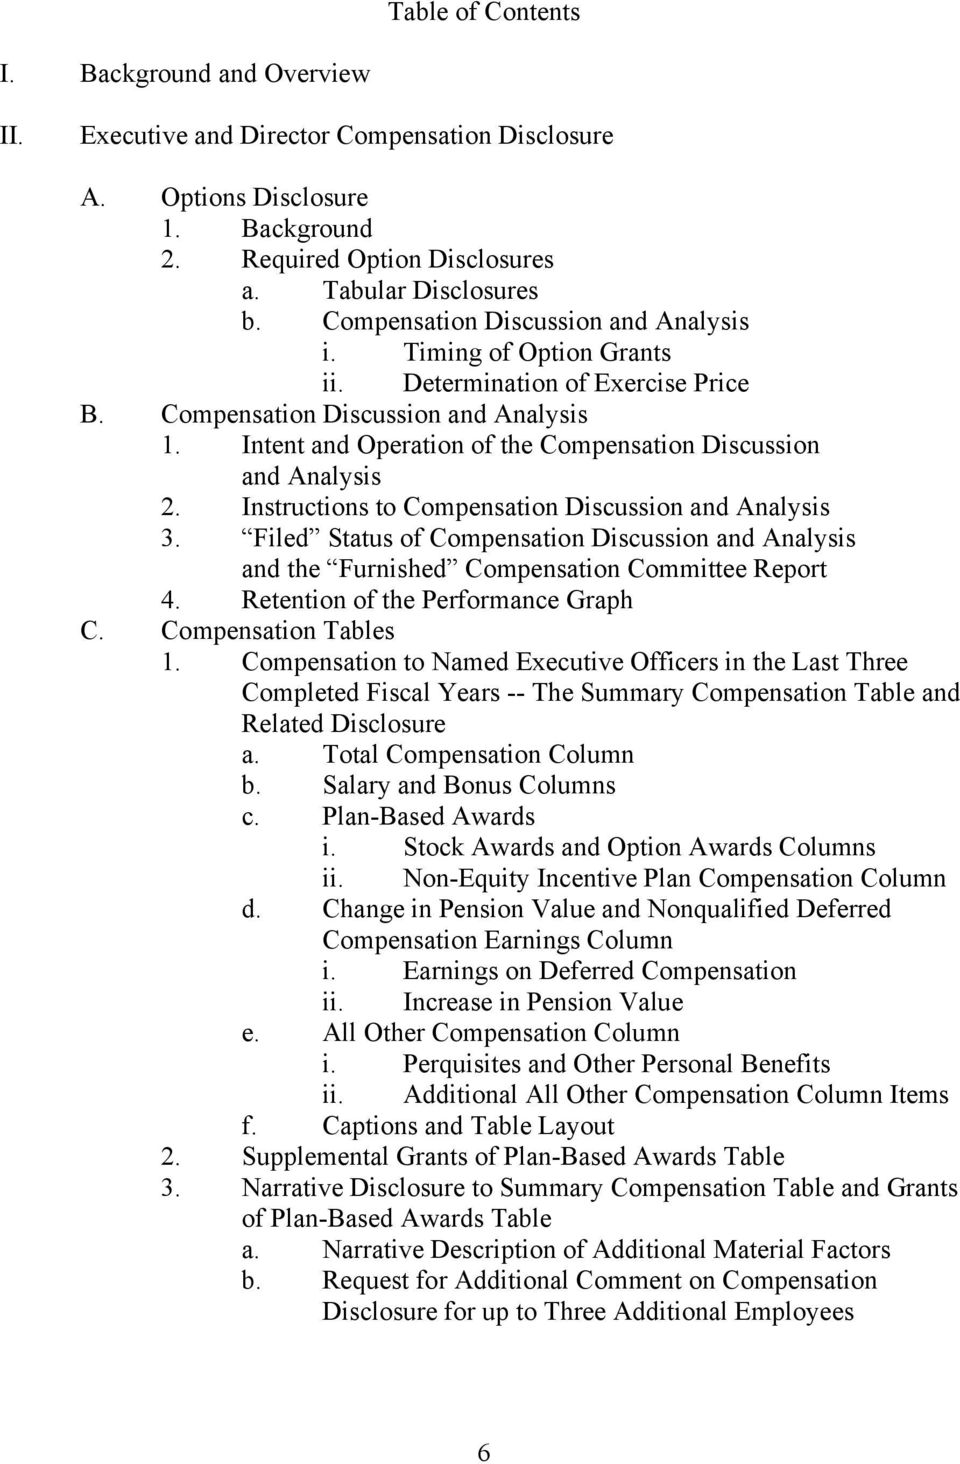 Intent and Operation of the Compensation Discussion and Analysis 2. Instructions to Compensation Discussion and Analysis 3.